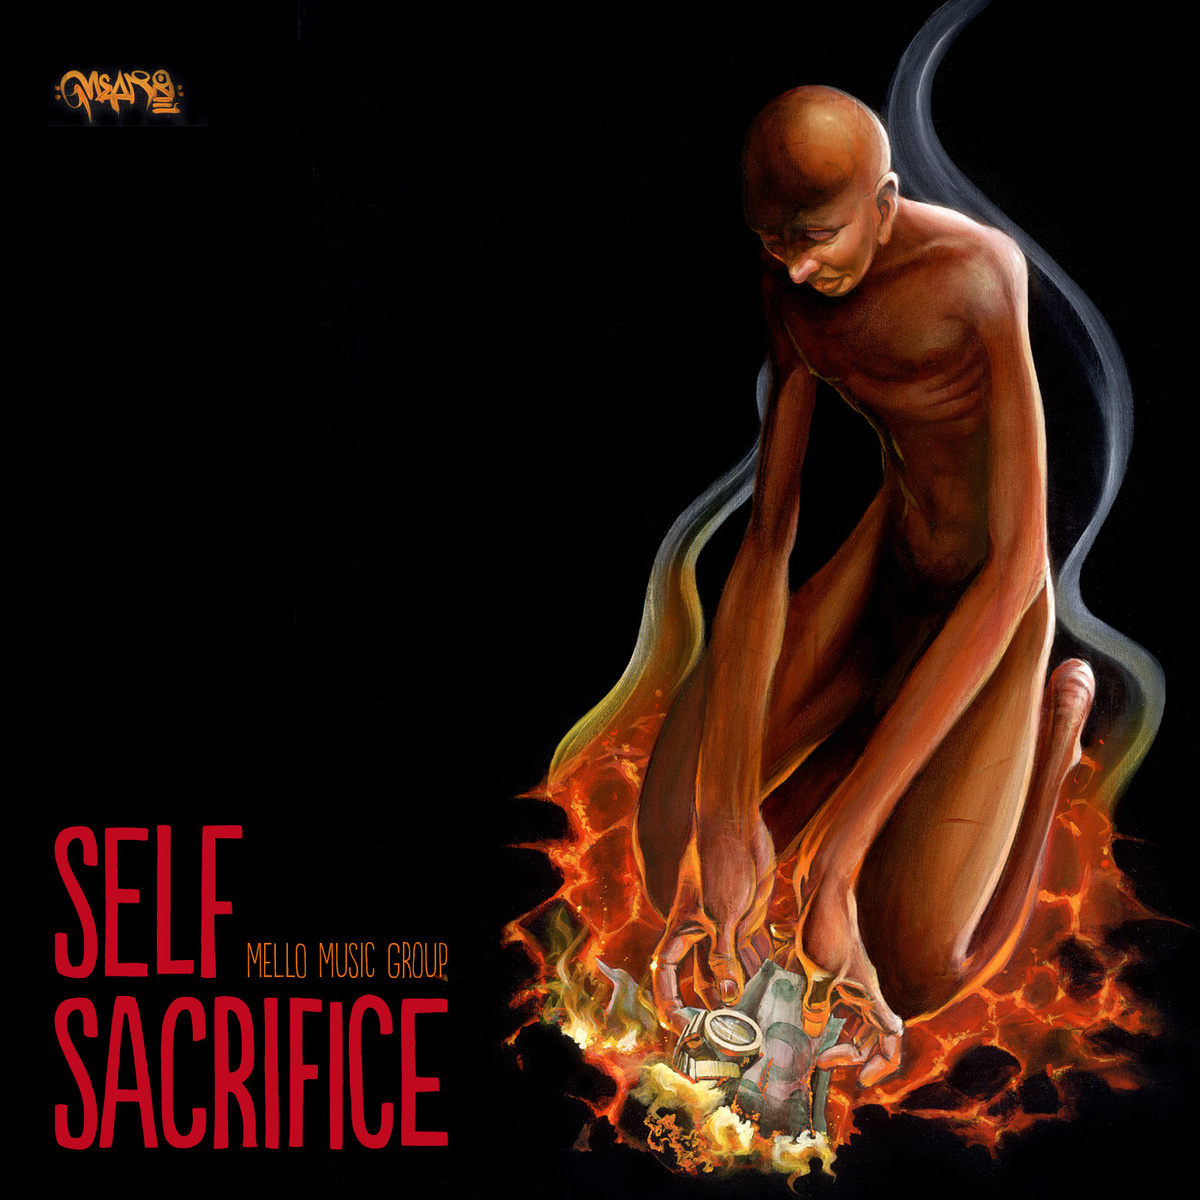 Self_sacrifice